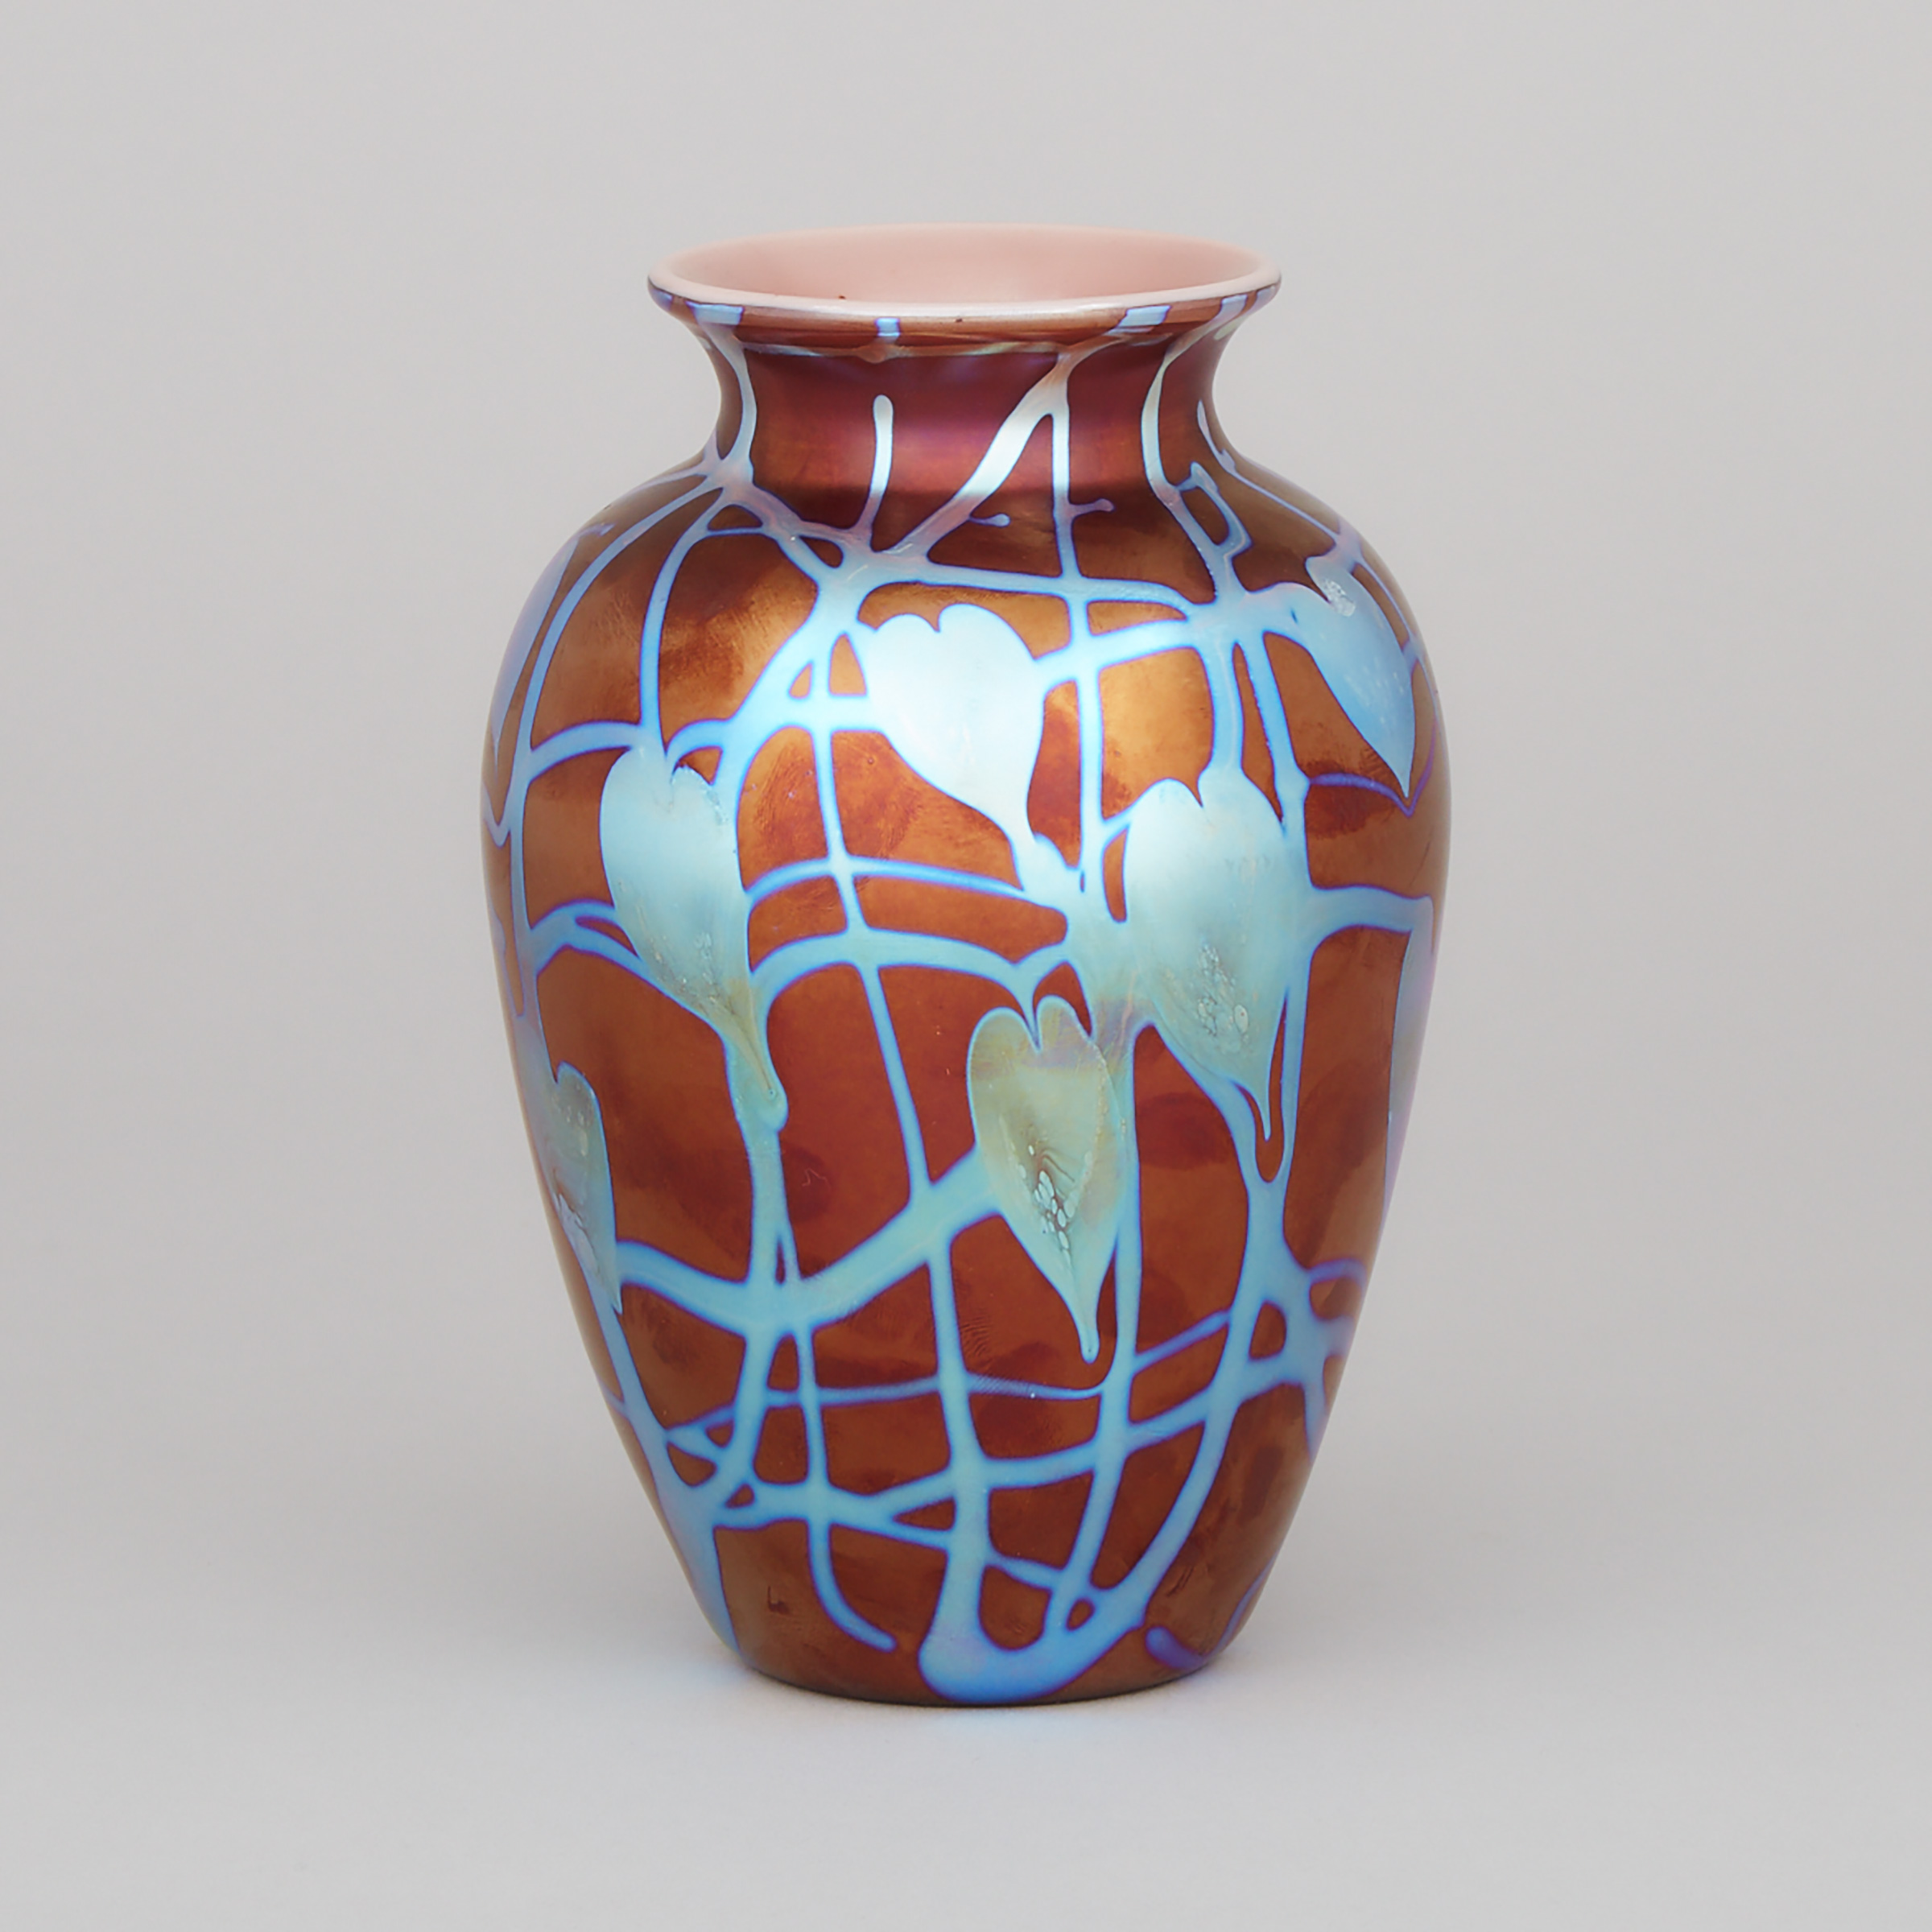 Donald Carlson (American, b.1944), Iridescent Glass Vase, late 20th century